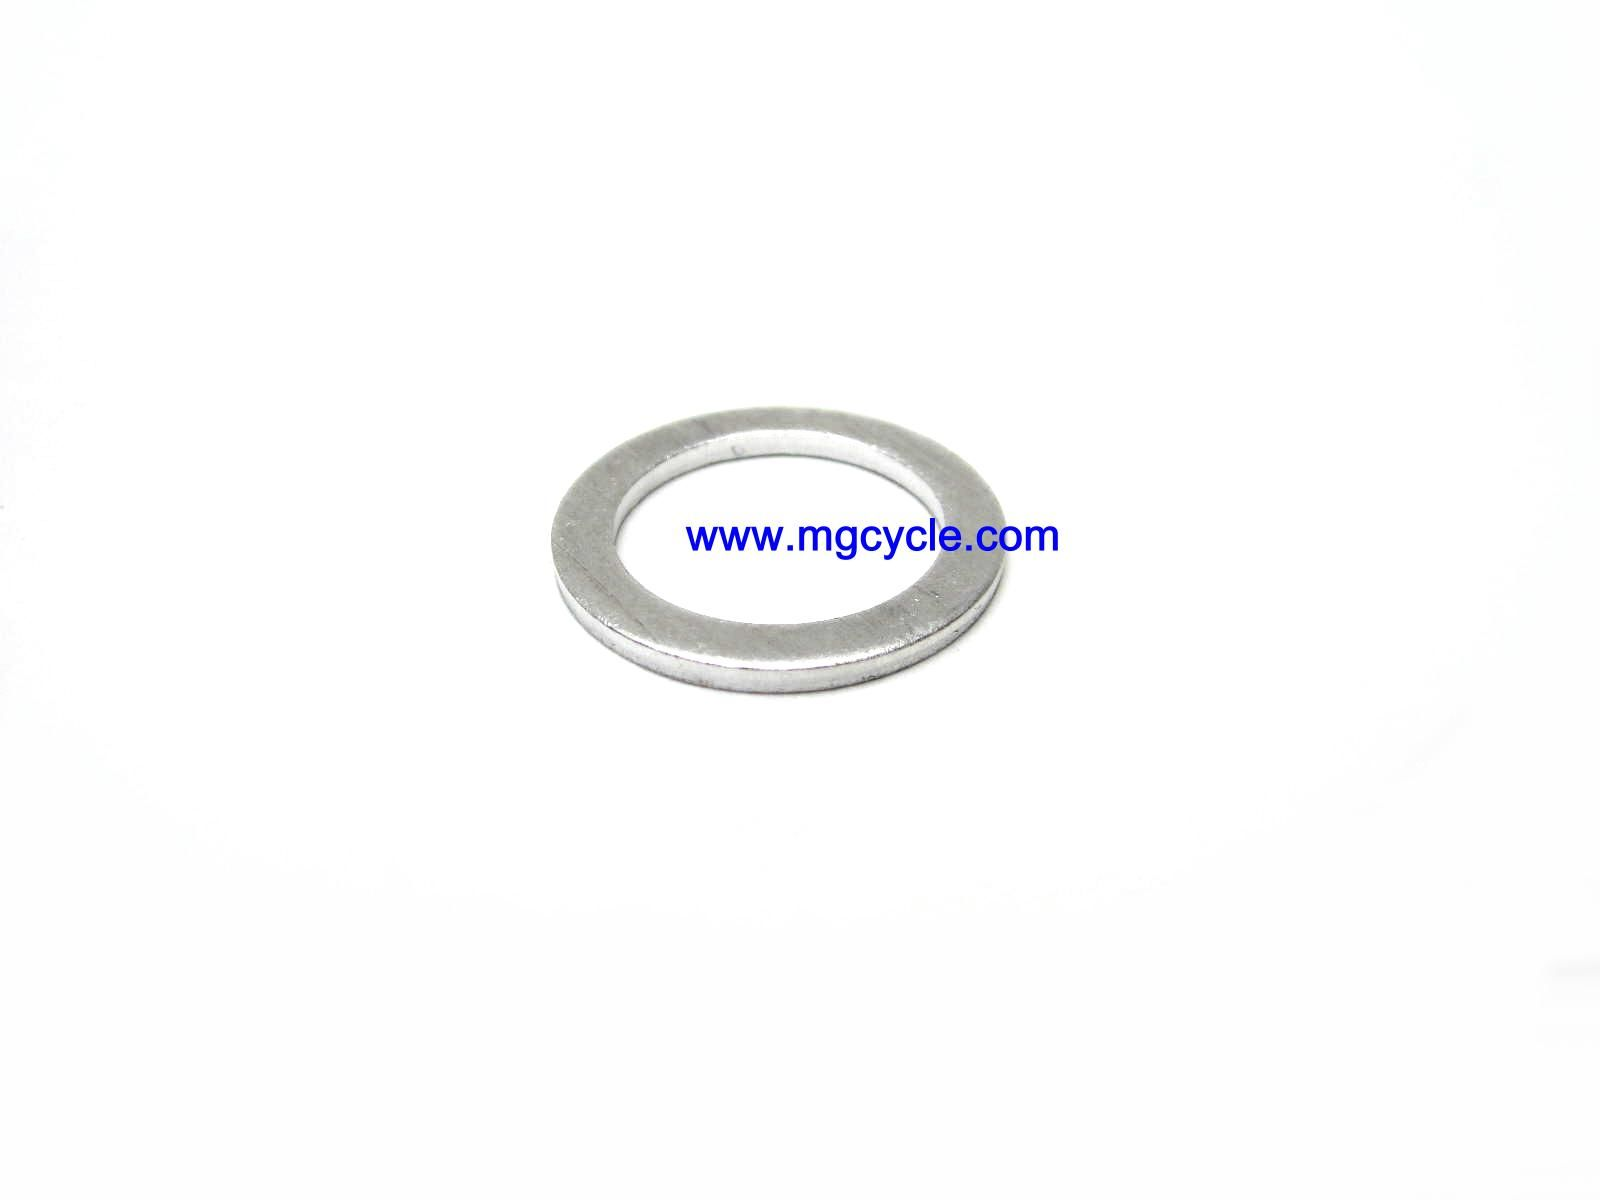 20mm aluminum sealing washer